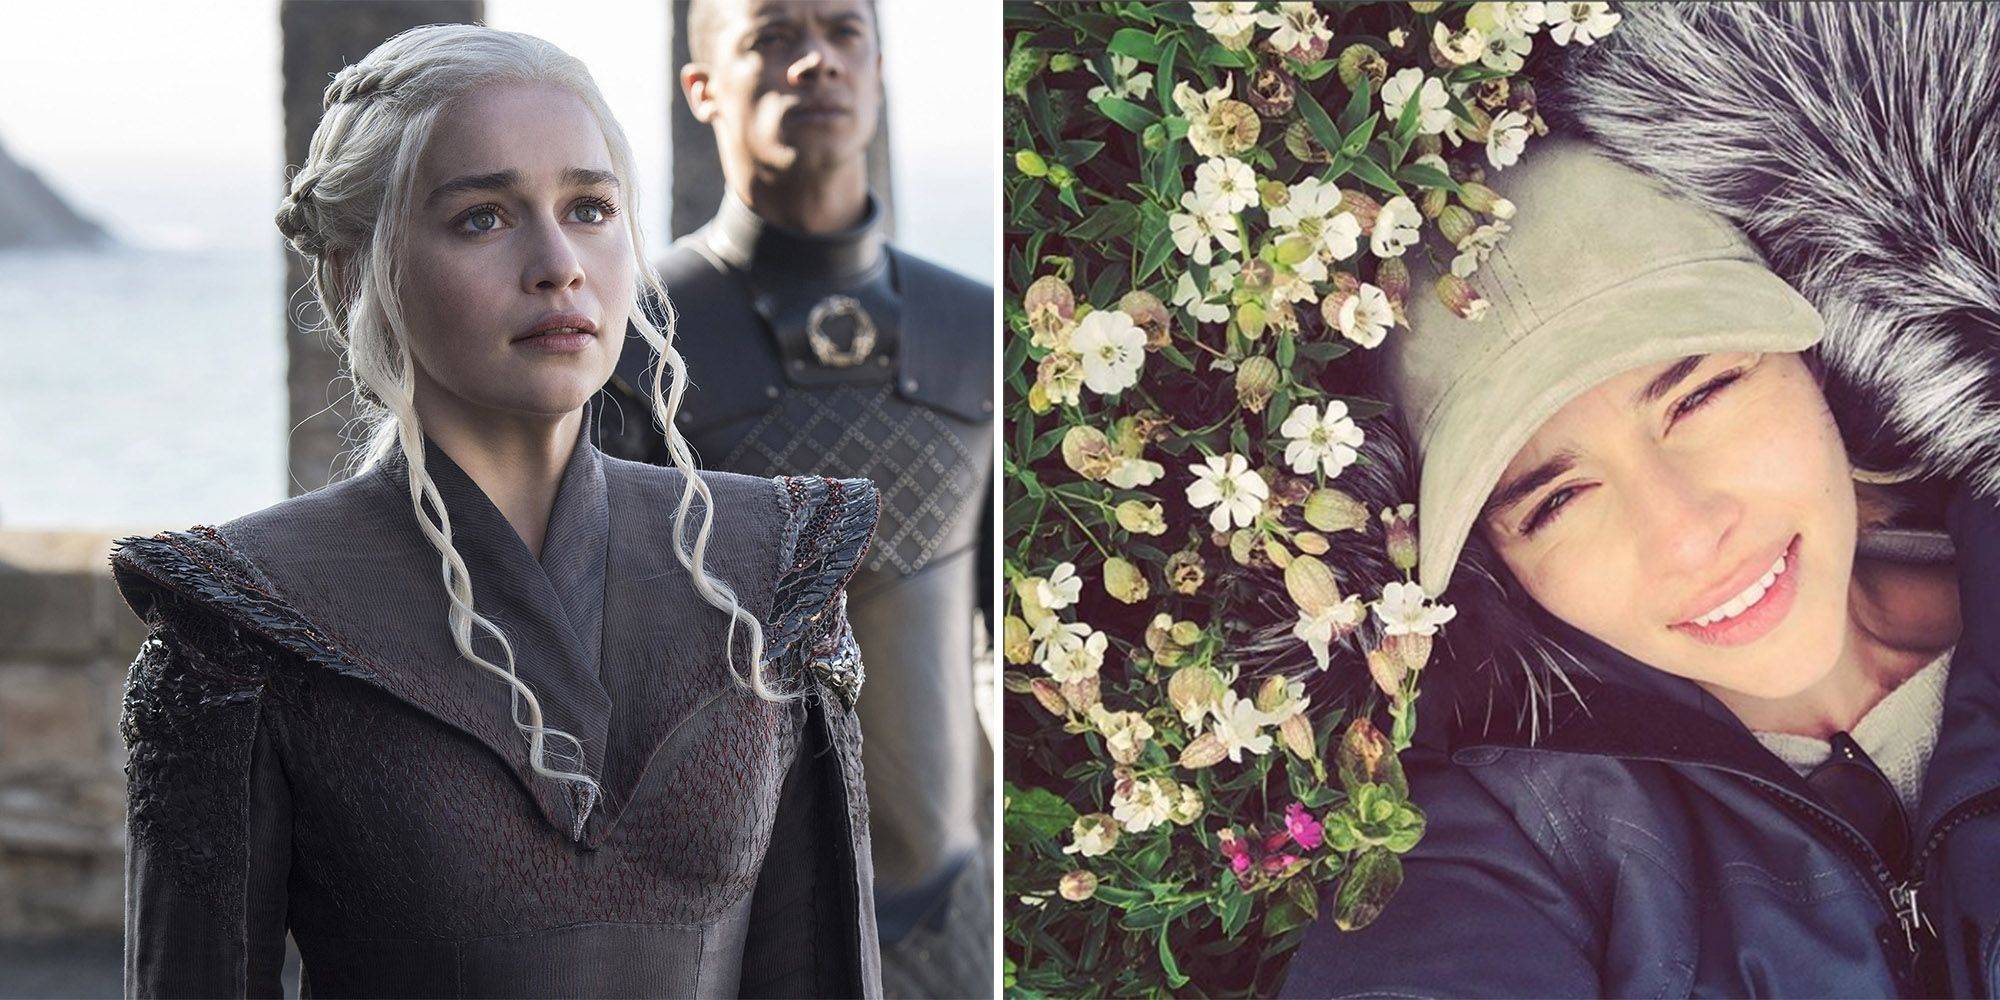 Emilia Clarke Shares a Heartbreaking Goodbye to Game of Thrones